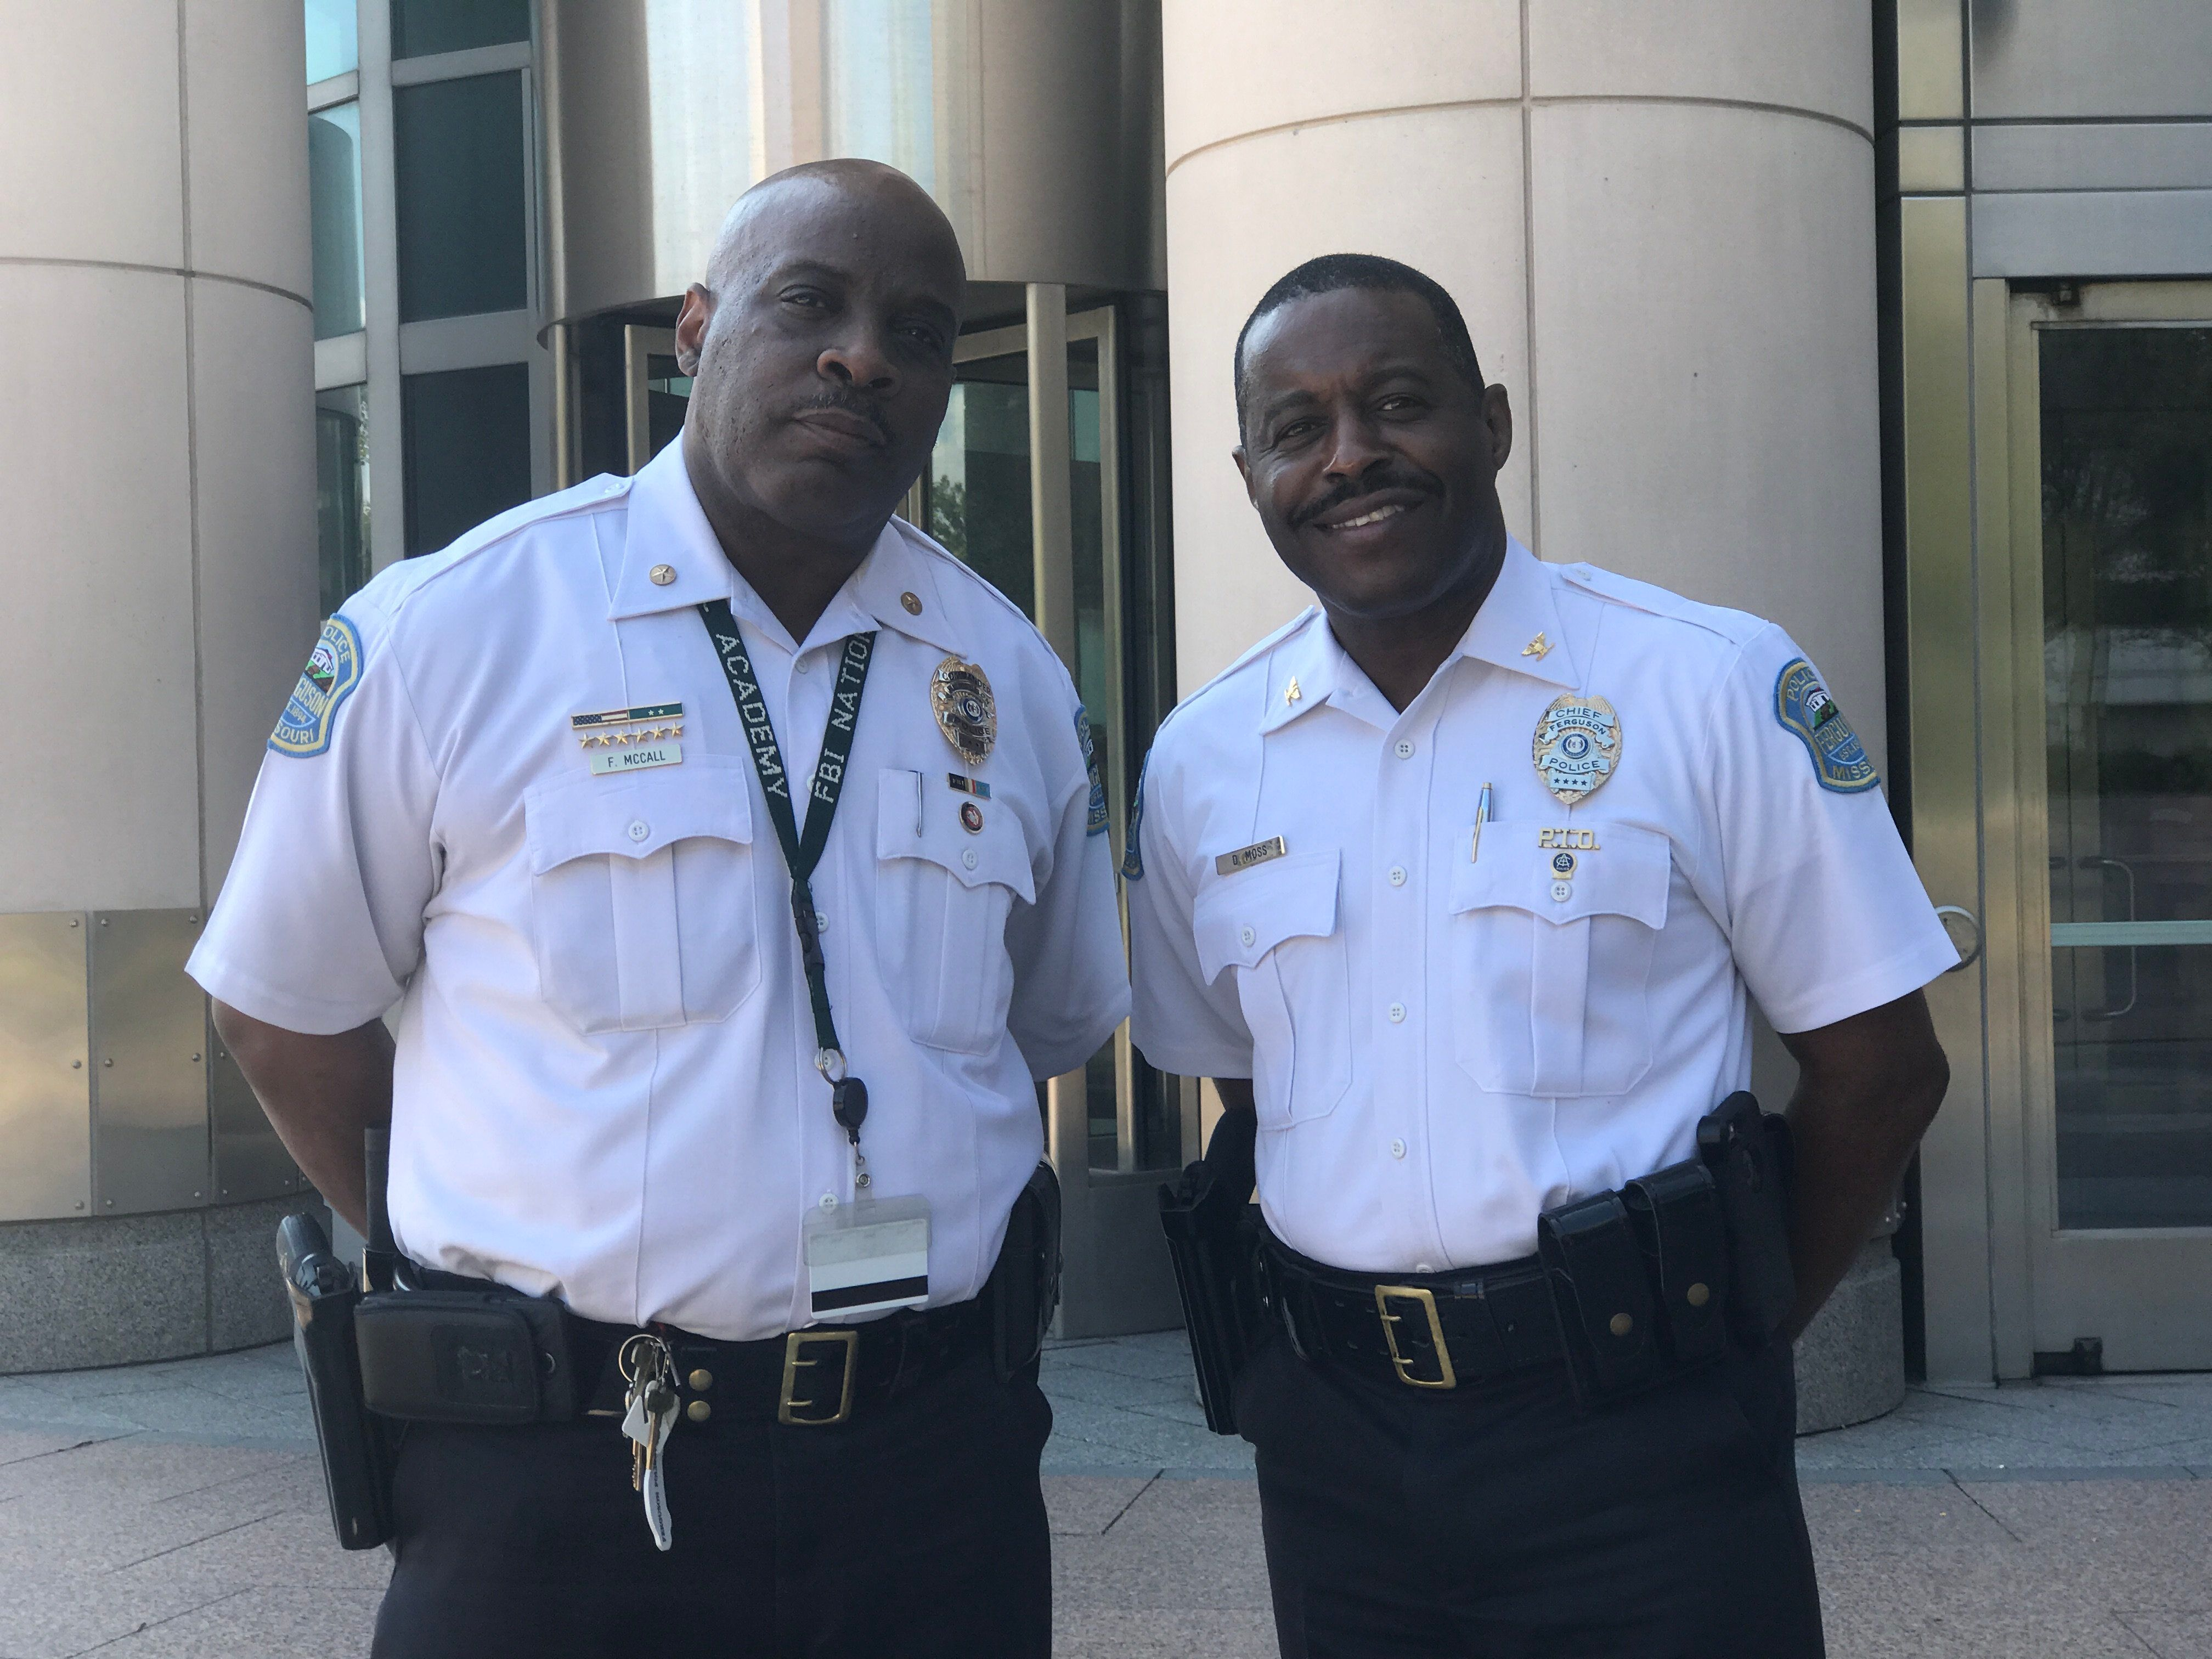 While St. Louis Faces New Protests, Ferguson Is Making 'Good Progress'